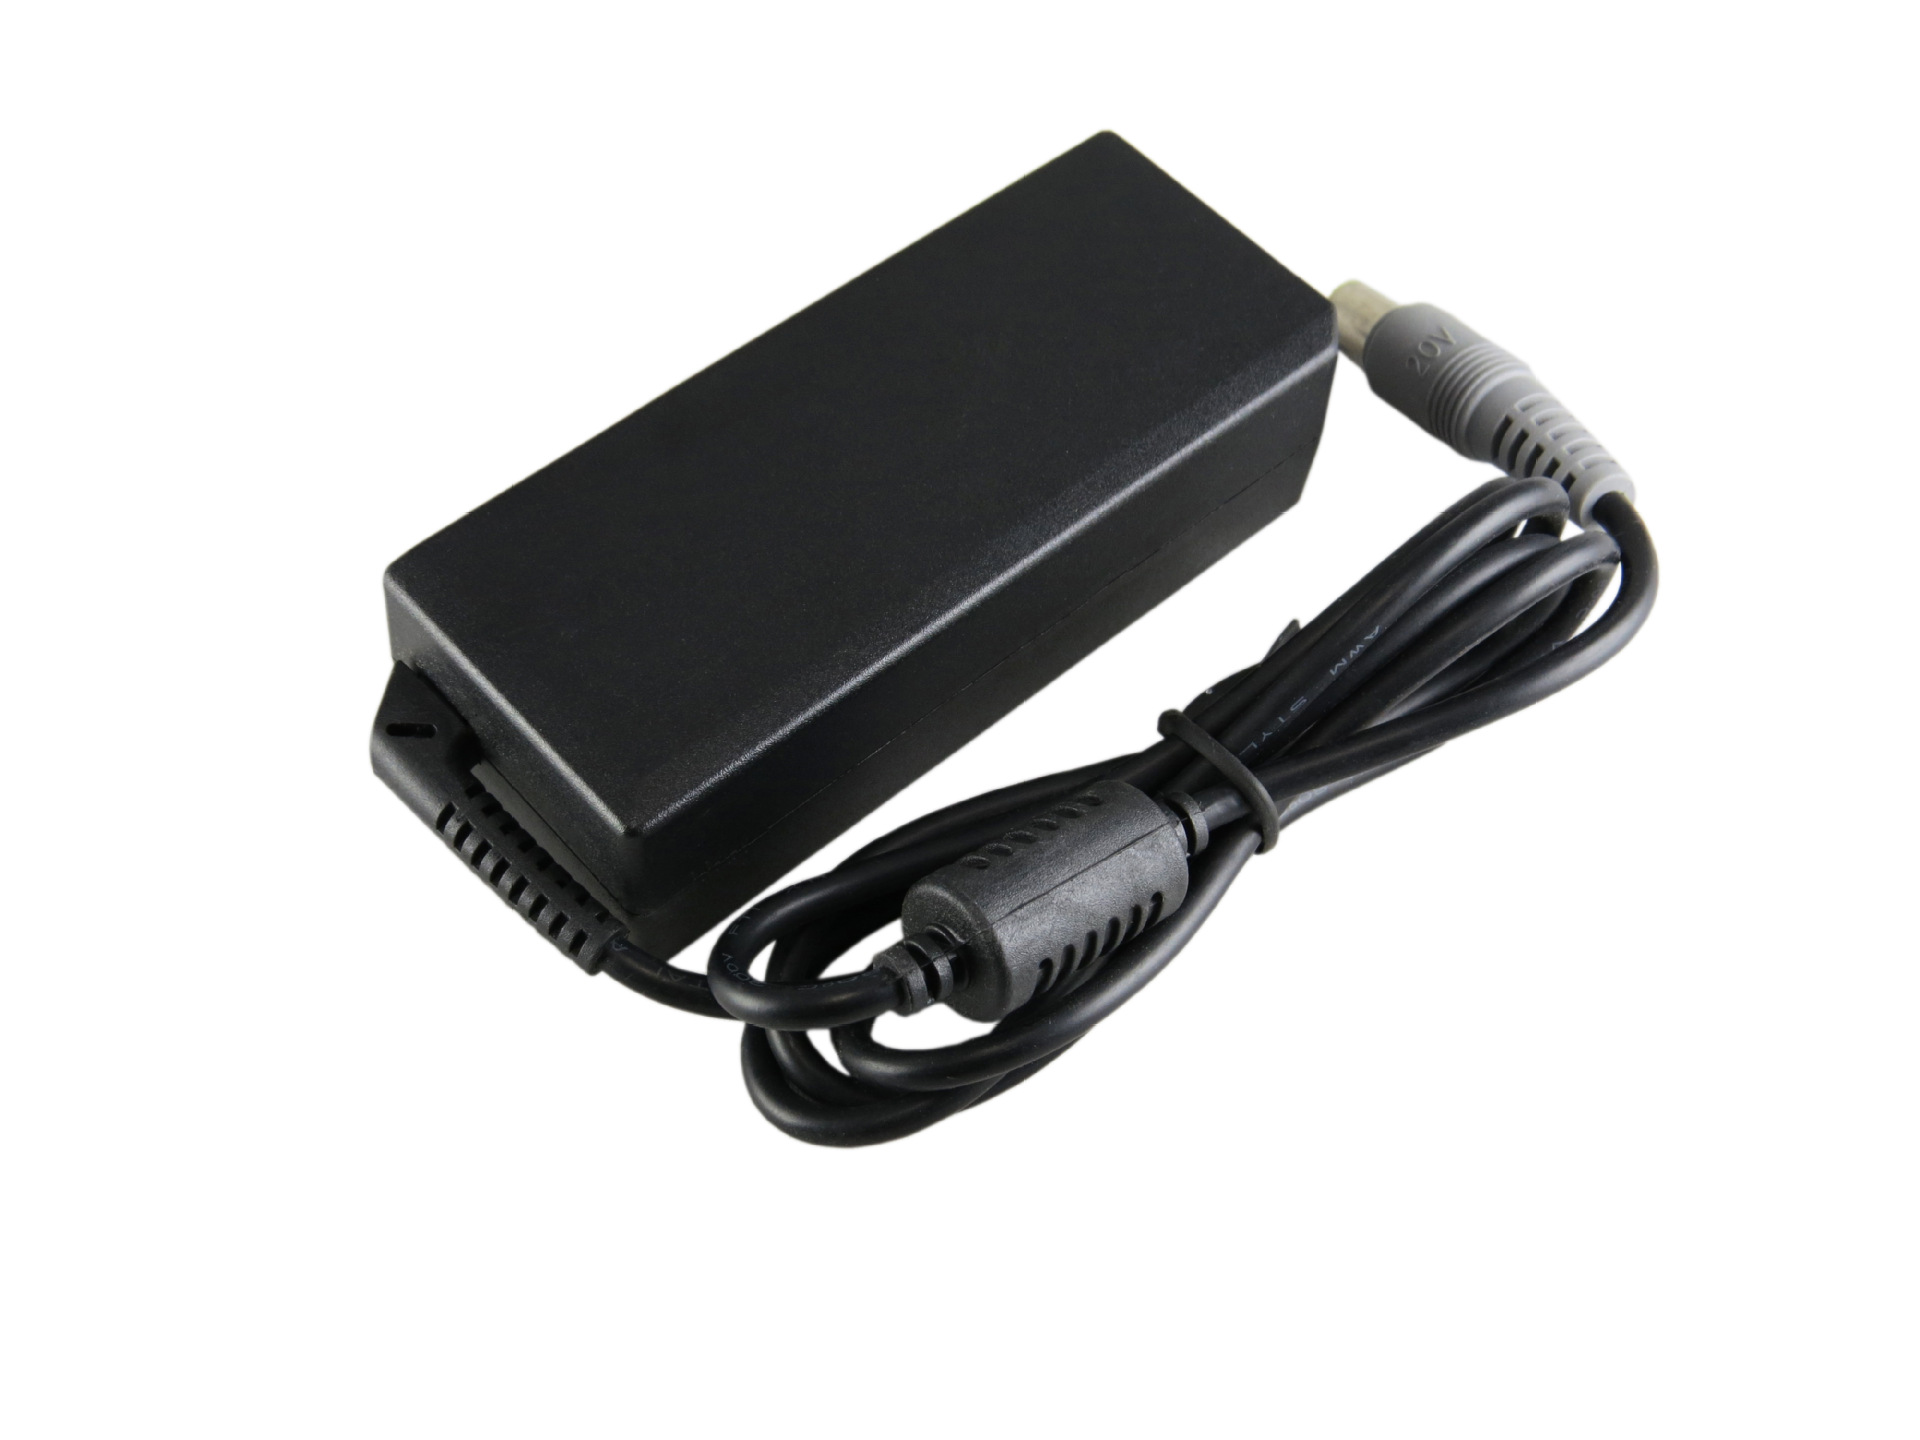 20V 3.25A 65W Laptop Ac Power Adapter Charger For Lenovo T410 T510 Sl410 Sl410K Sl510 Sl510K T510I X201 X220 X230